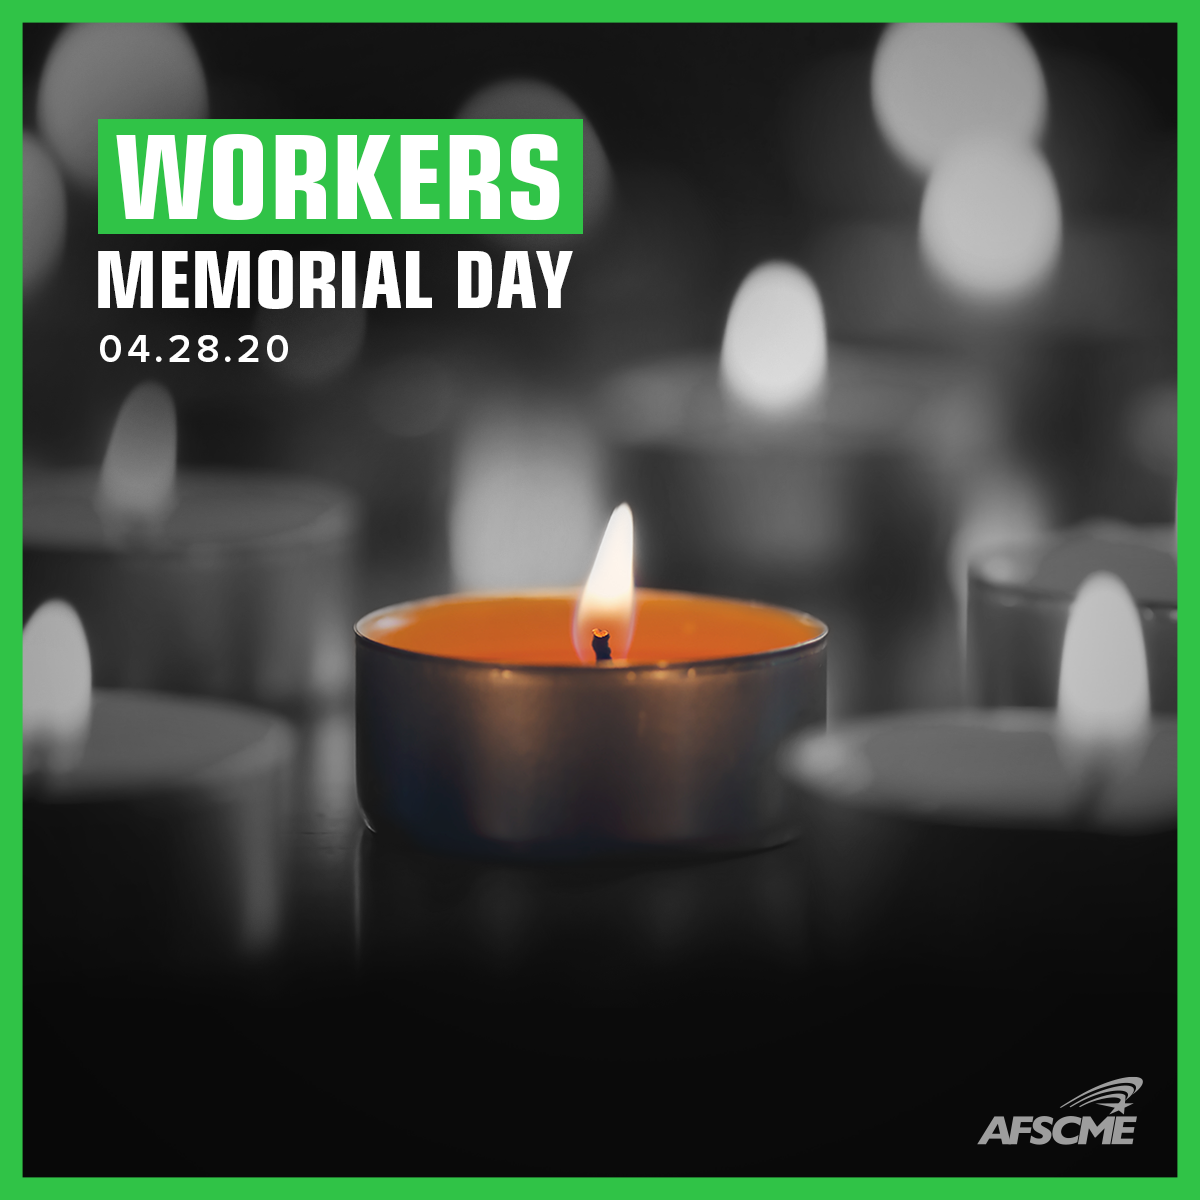 SHARE: Workers Memorial Day